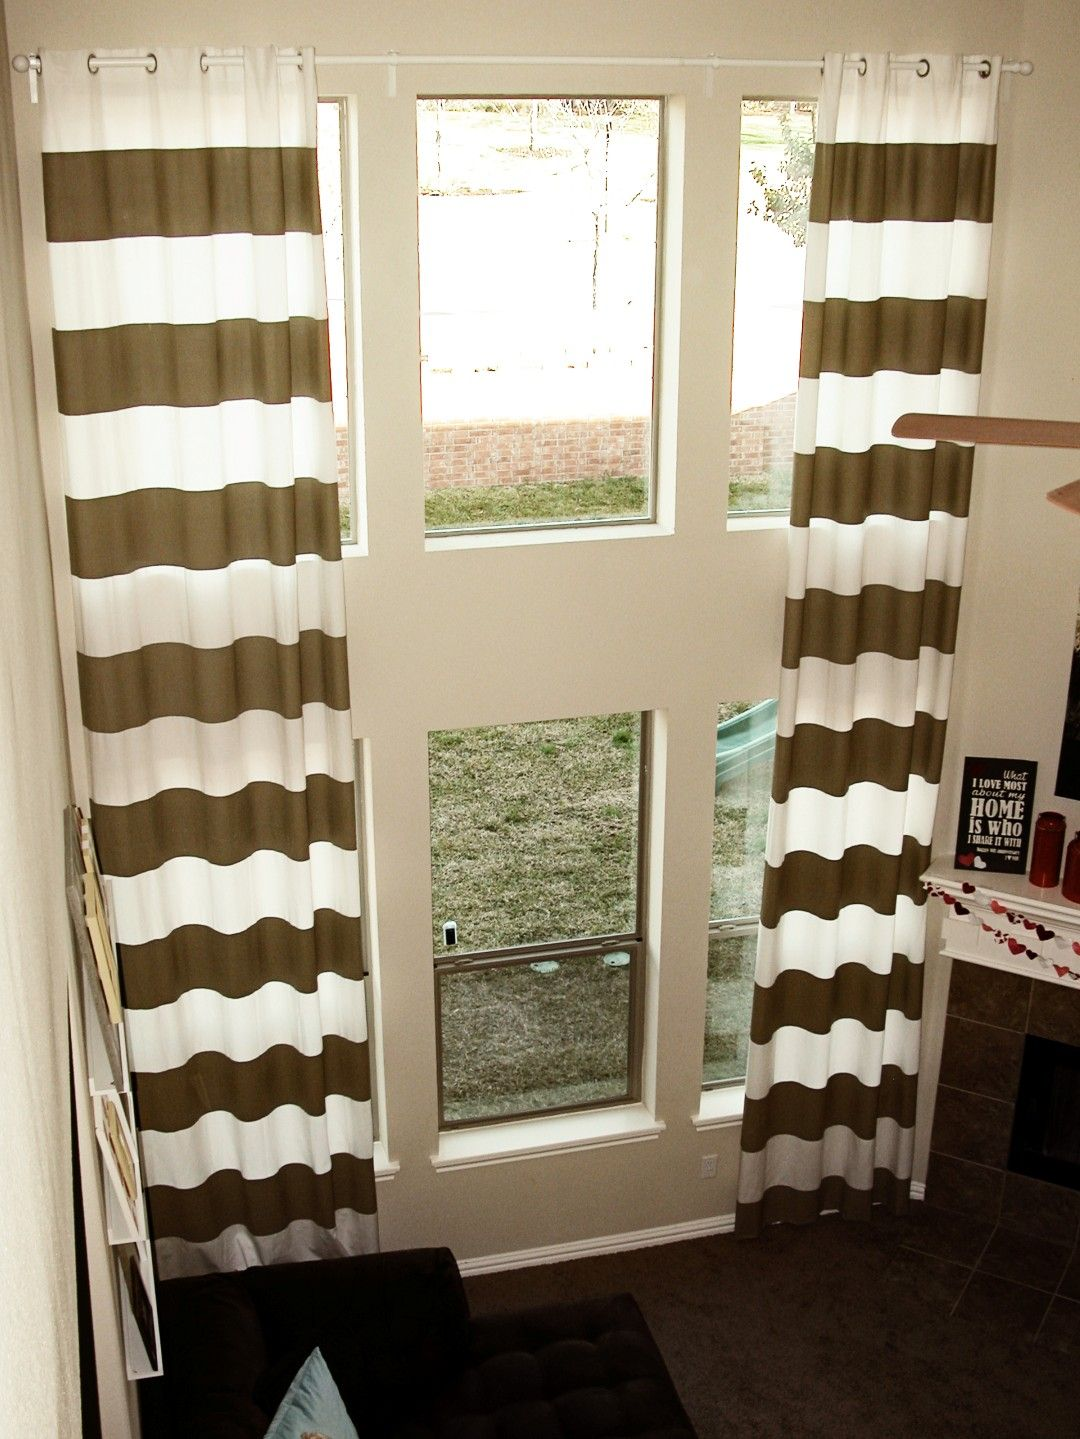 Window dressing ideas for arched windows  edit large  curtains u walls  pinterest  living rooms